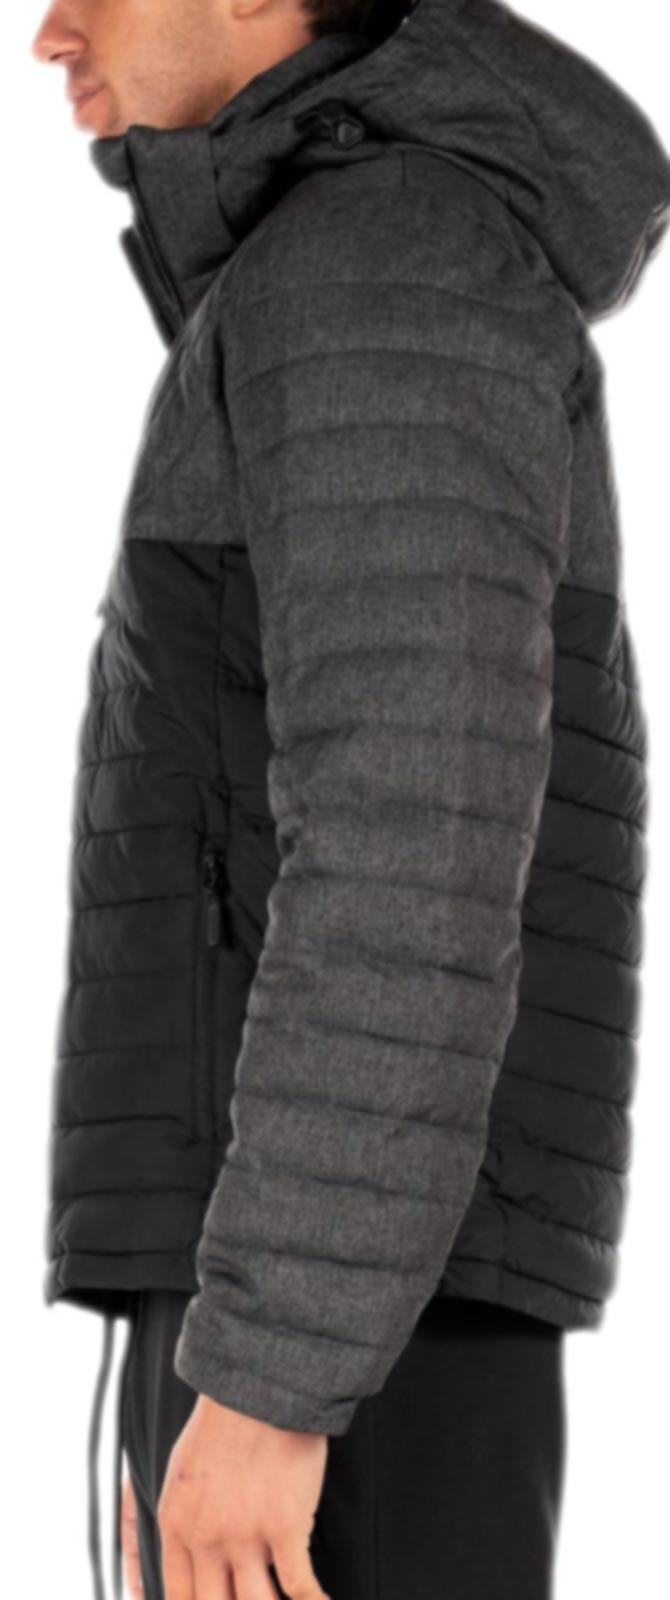 Superdry Fuji Tweed Mix Jacket	Charcoal Herringbone